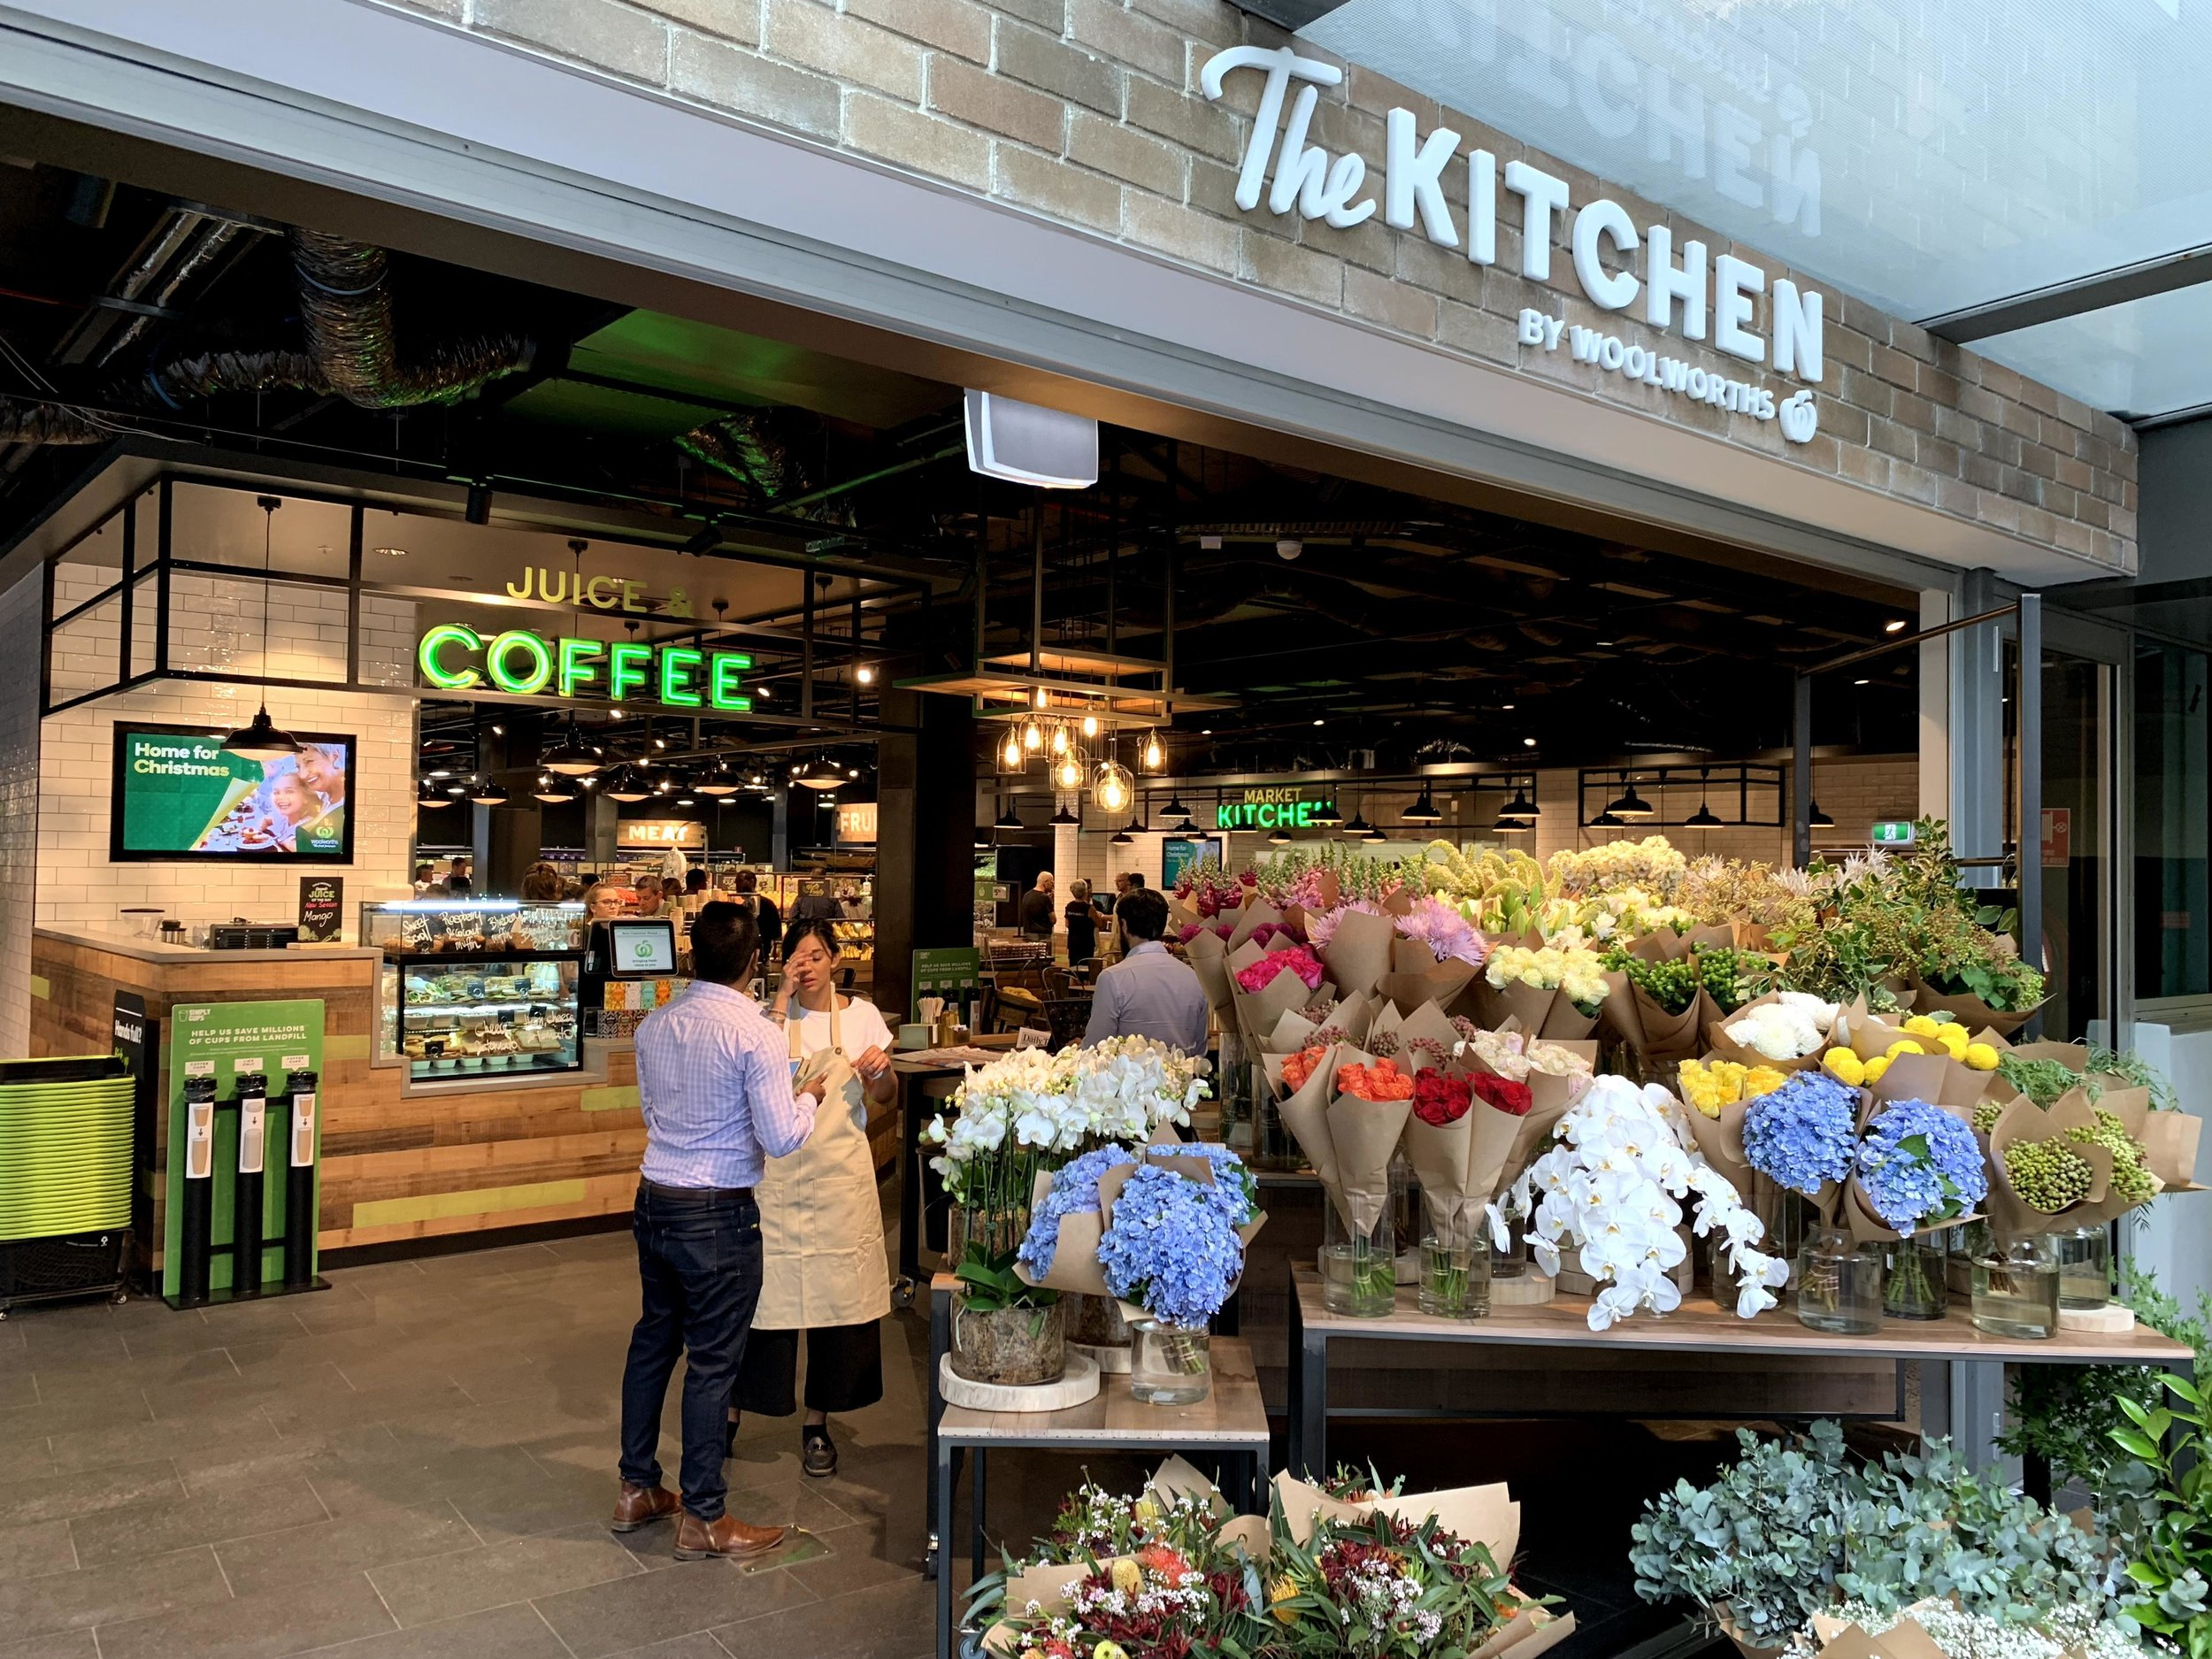 The Kitchen By Woolworths